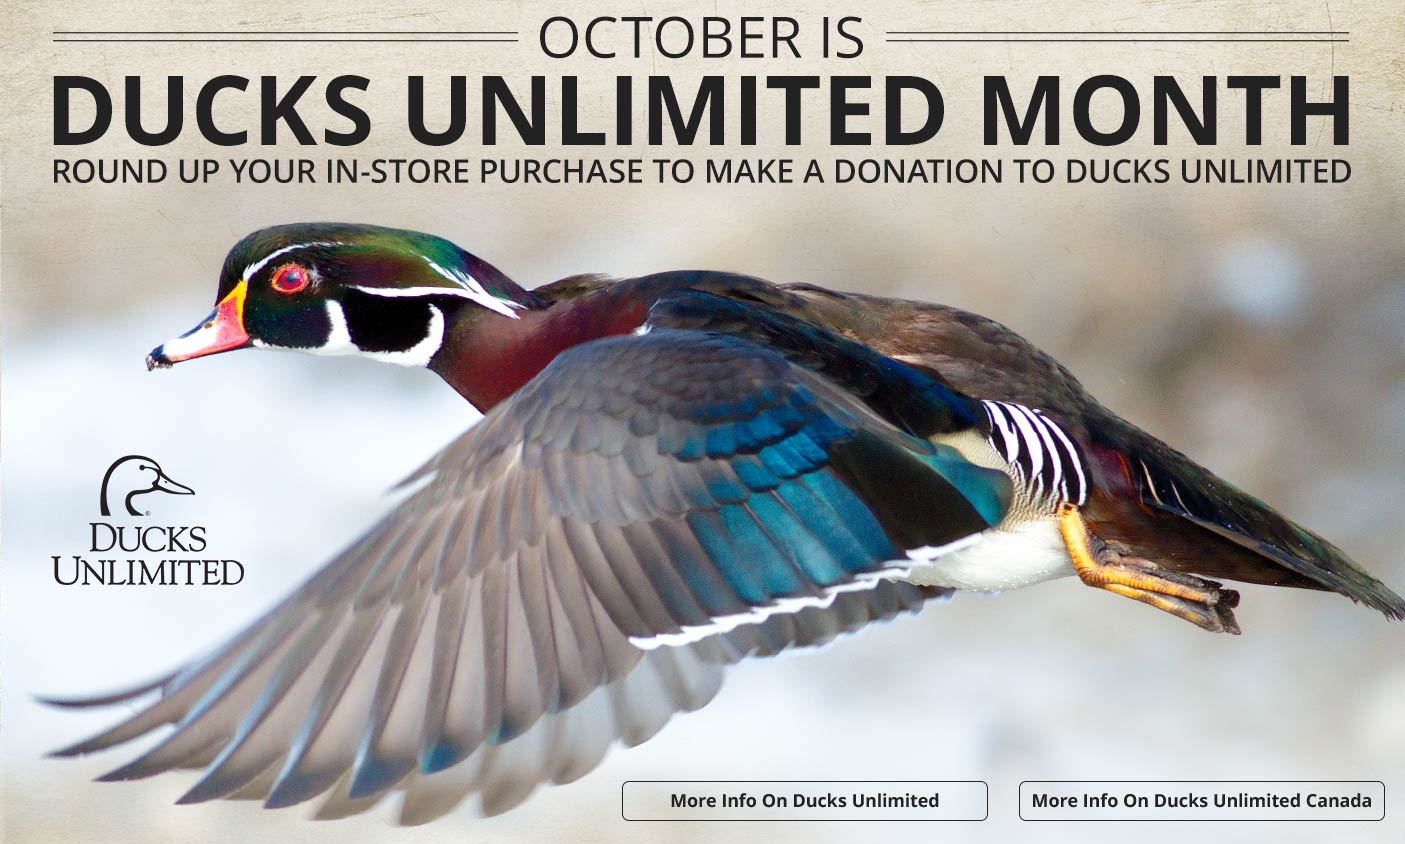 October Is Ducks Unlimited Month - More Info